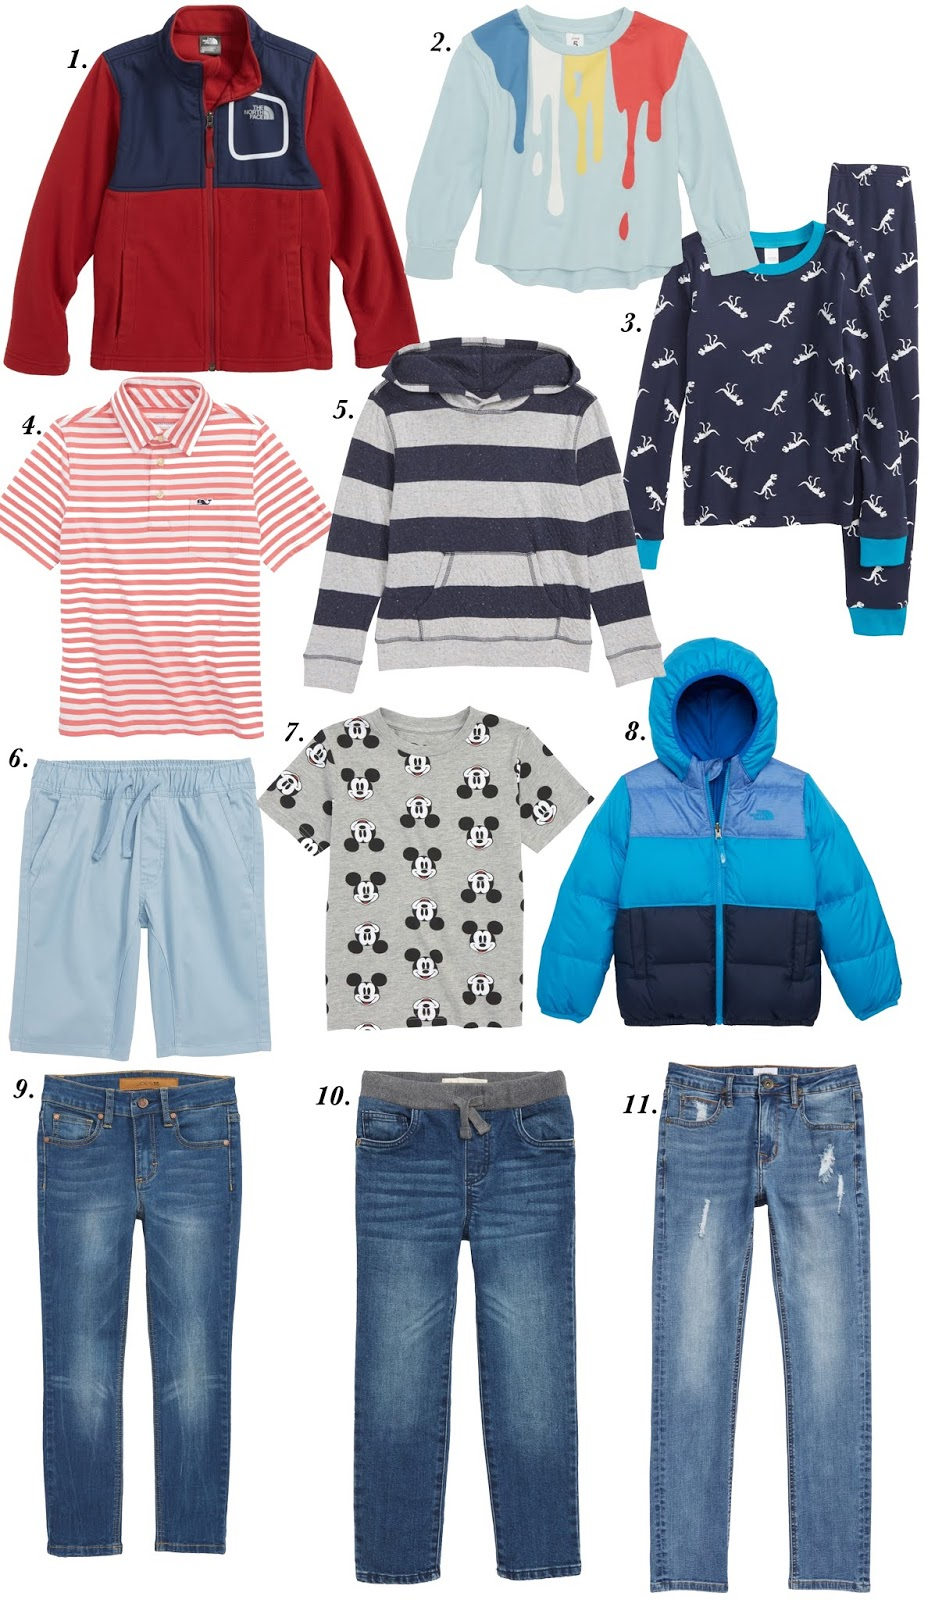 2018 Nordstrom Anniversary Sale: Picks for Kids - Something Delightful Blog